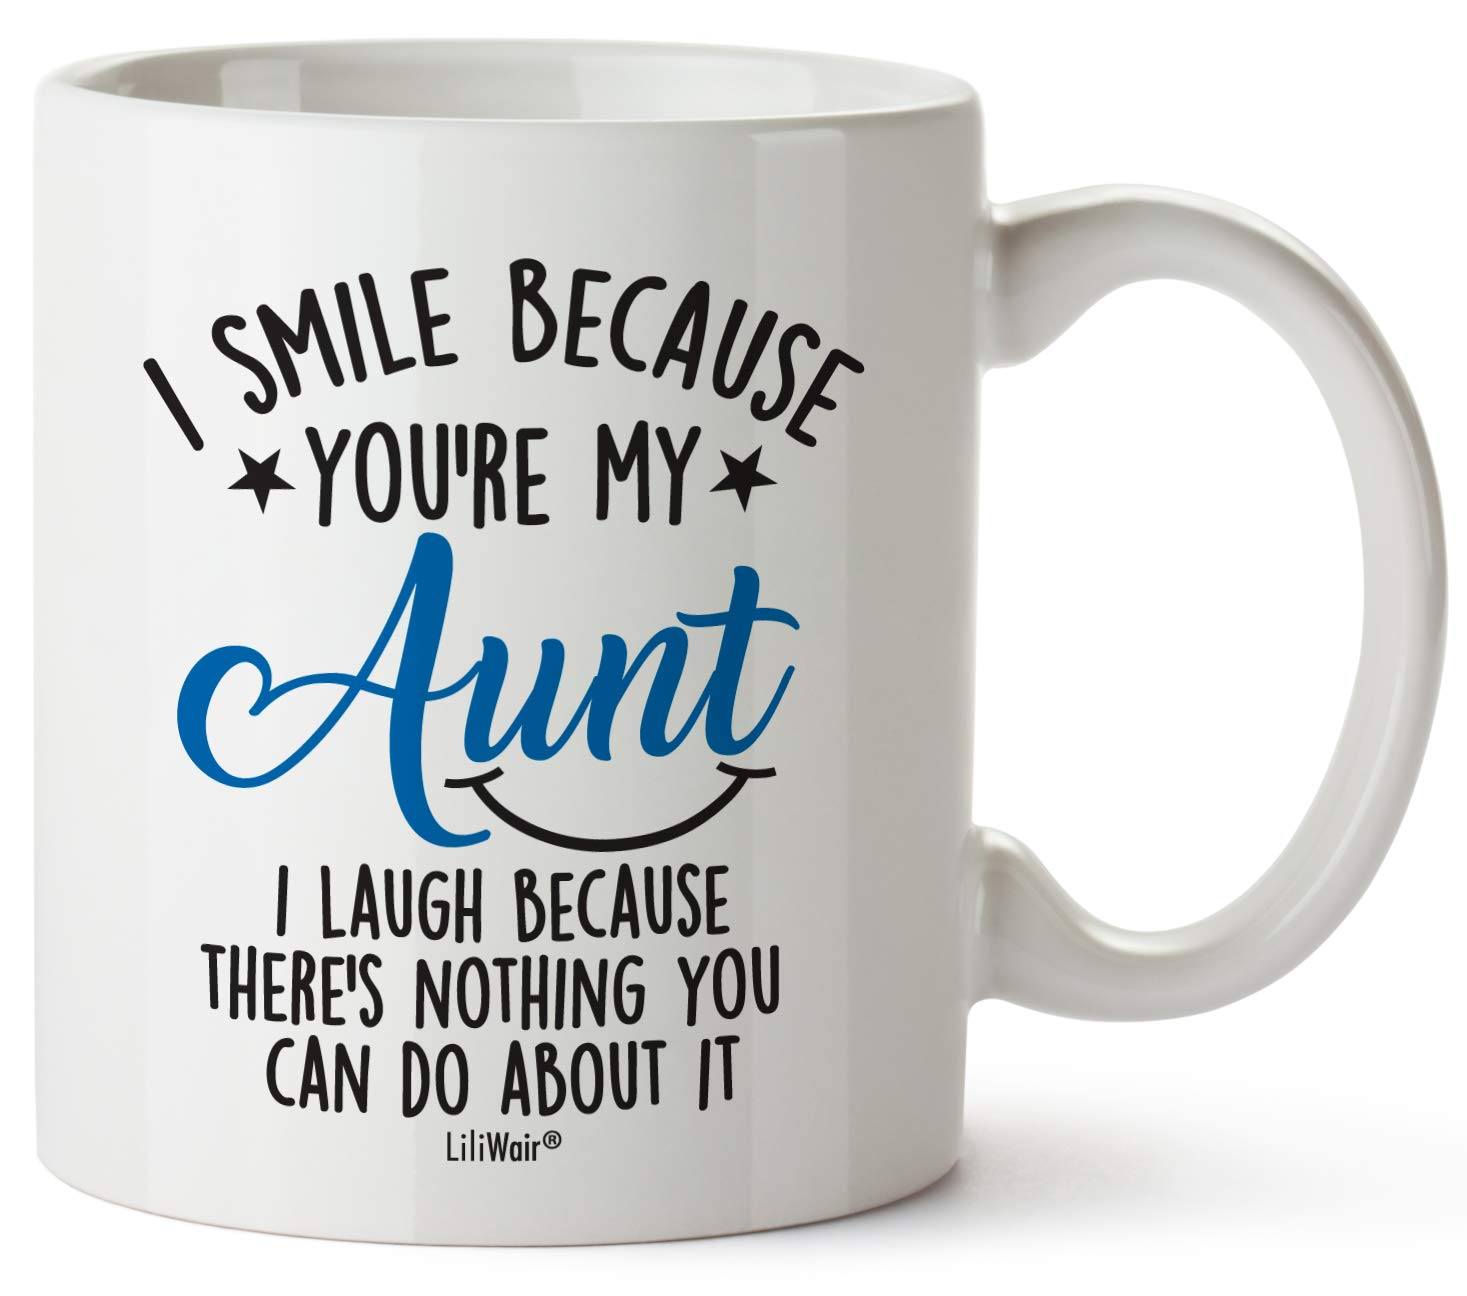 Aunt Gifts For Christmas Aunts From Niece Best Ever Auntie Gift Ideas Nephew Birthday Mugs Coffee Cups The Greatest